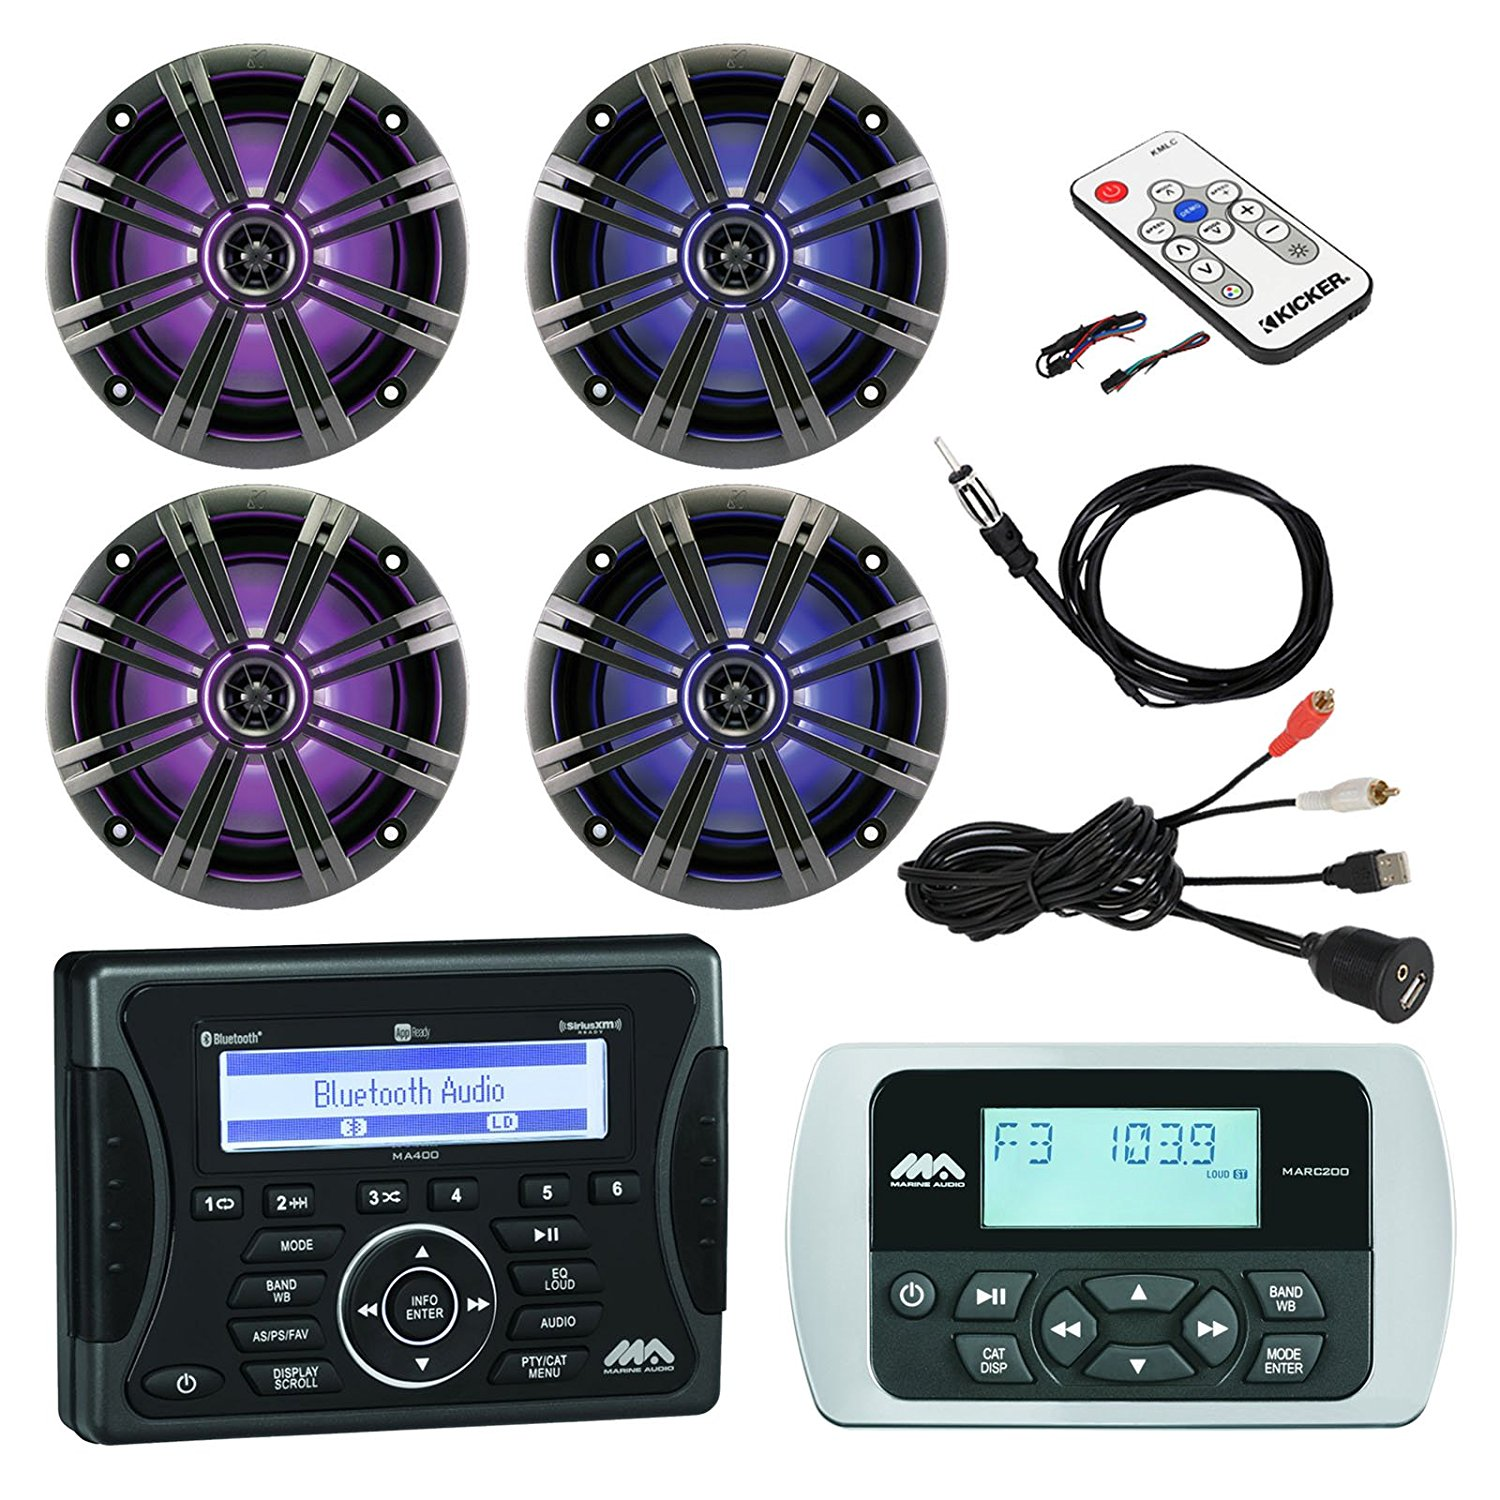 """Jensen Marine Audio Bluetooth AUX USB SiriusXM-Ready Receiver, Wired Remote, 4x 8"""" Marine LED Coaxial Speakers w/ Grilles, Braided Cable Antenna, Kicker LED Light Remote Controller, USB Mount"""